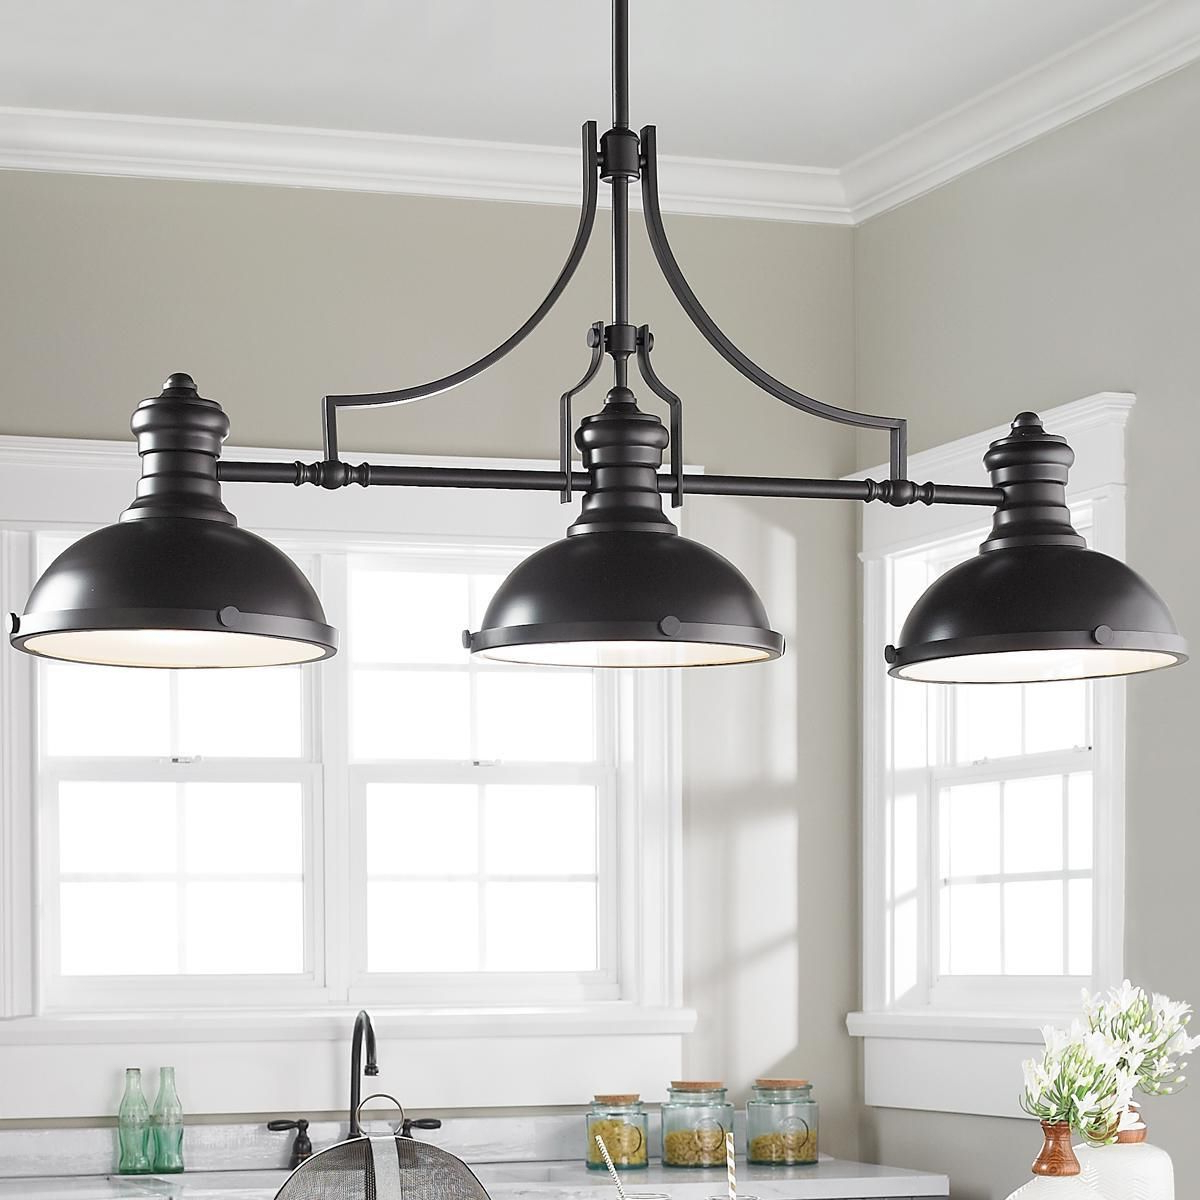 Ariel 3 Light Kitchen Island Dome Pendants Inside Preferred Craftsman Period Island Chandelier – 3 Light (View 11 of 25)